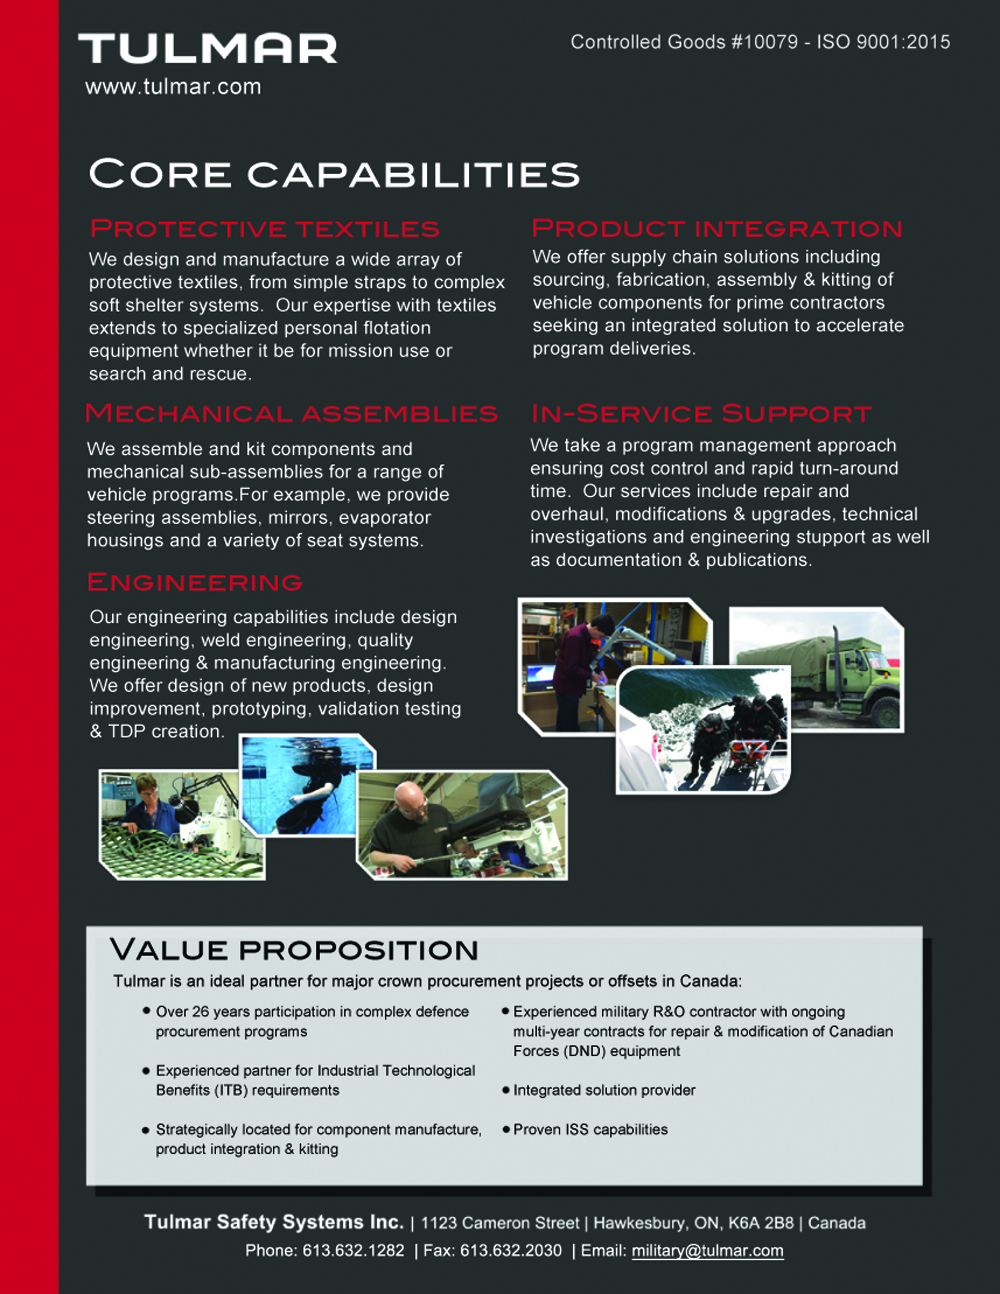 Defence_Capabilities_Core_Capabilities